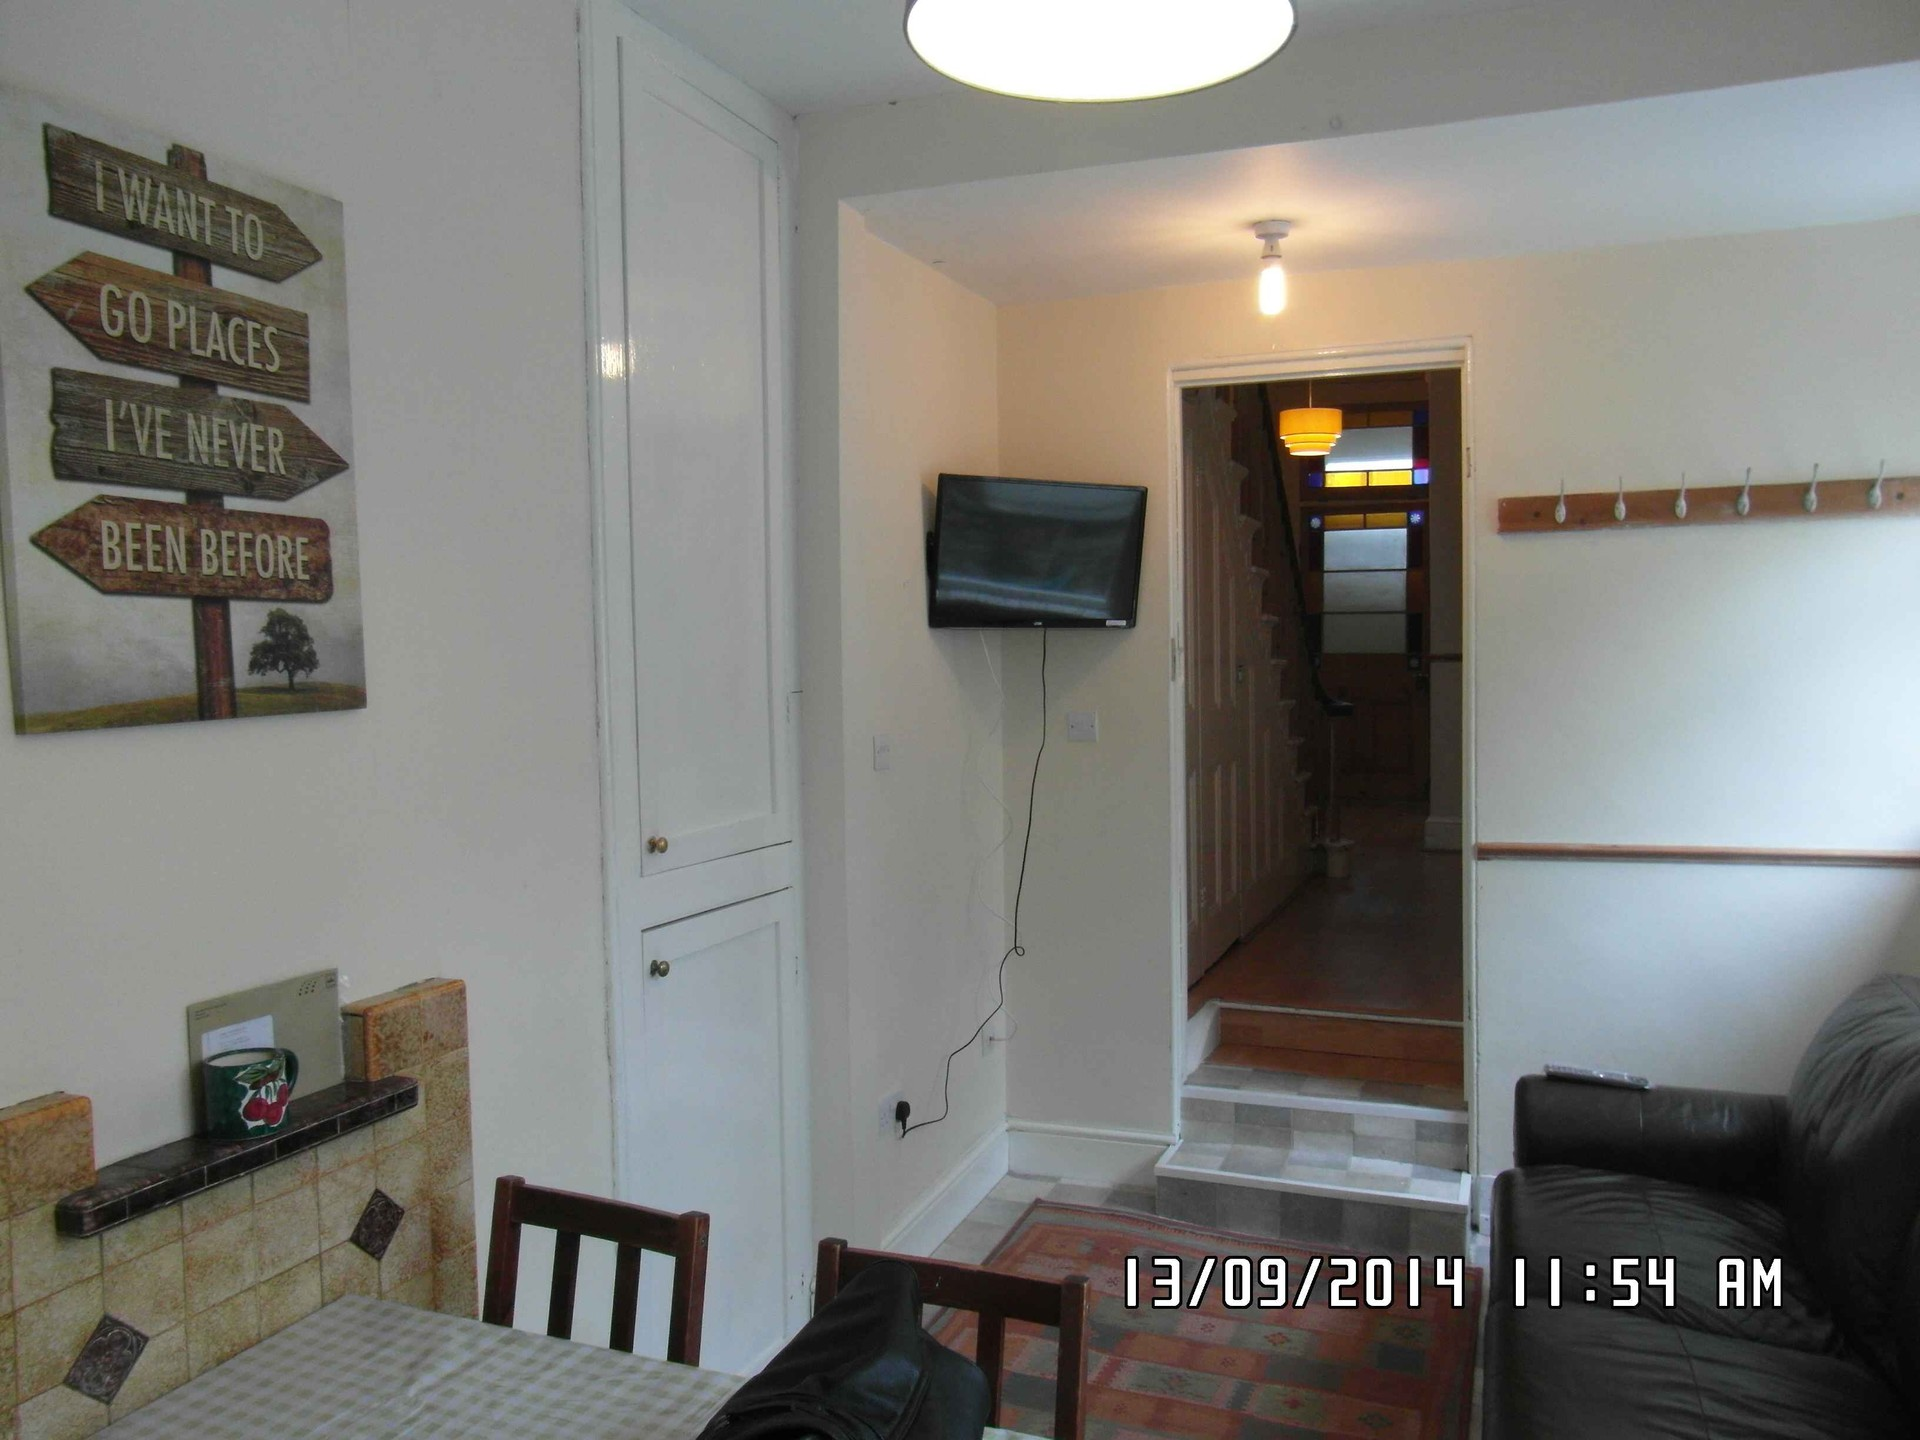 six-bed-student-house-one-best-student-roads-plymouth-bang-main-campus-mutley-plain-d9a79b5e4afd8847f87d3e95e756afd3.jpg